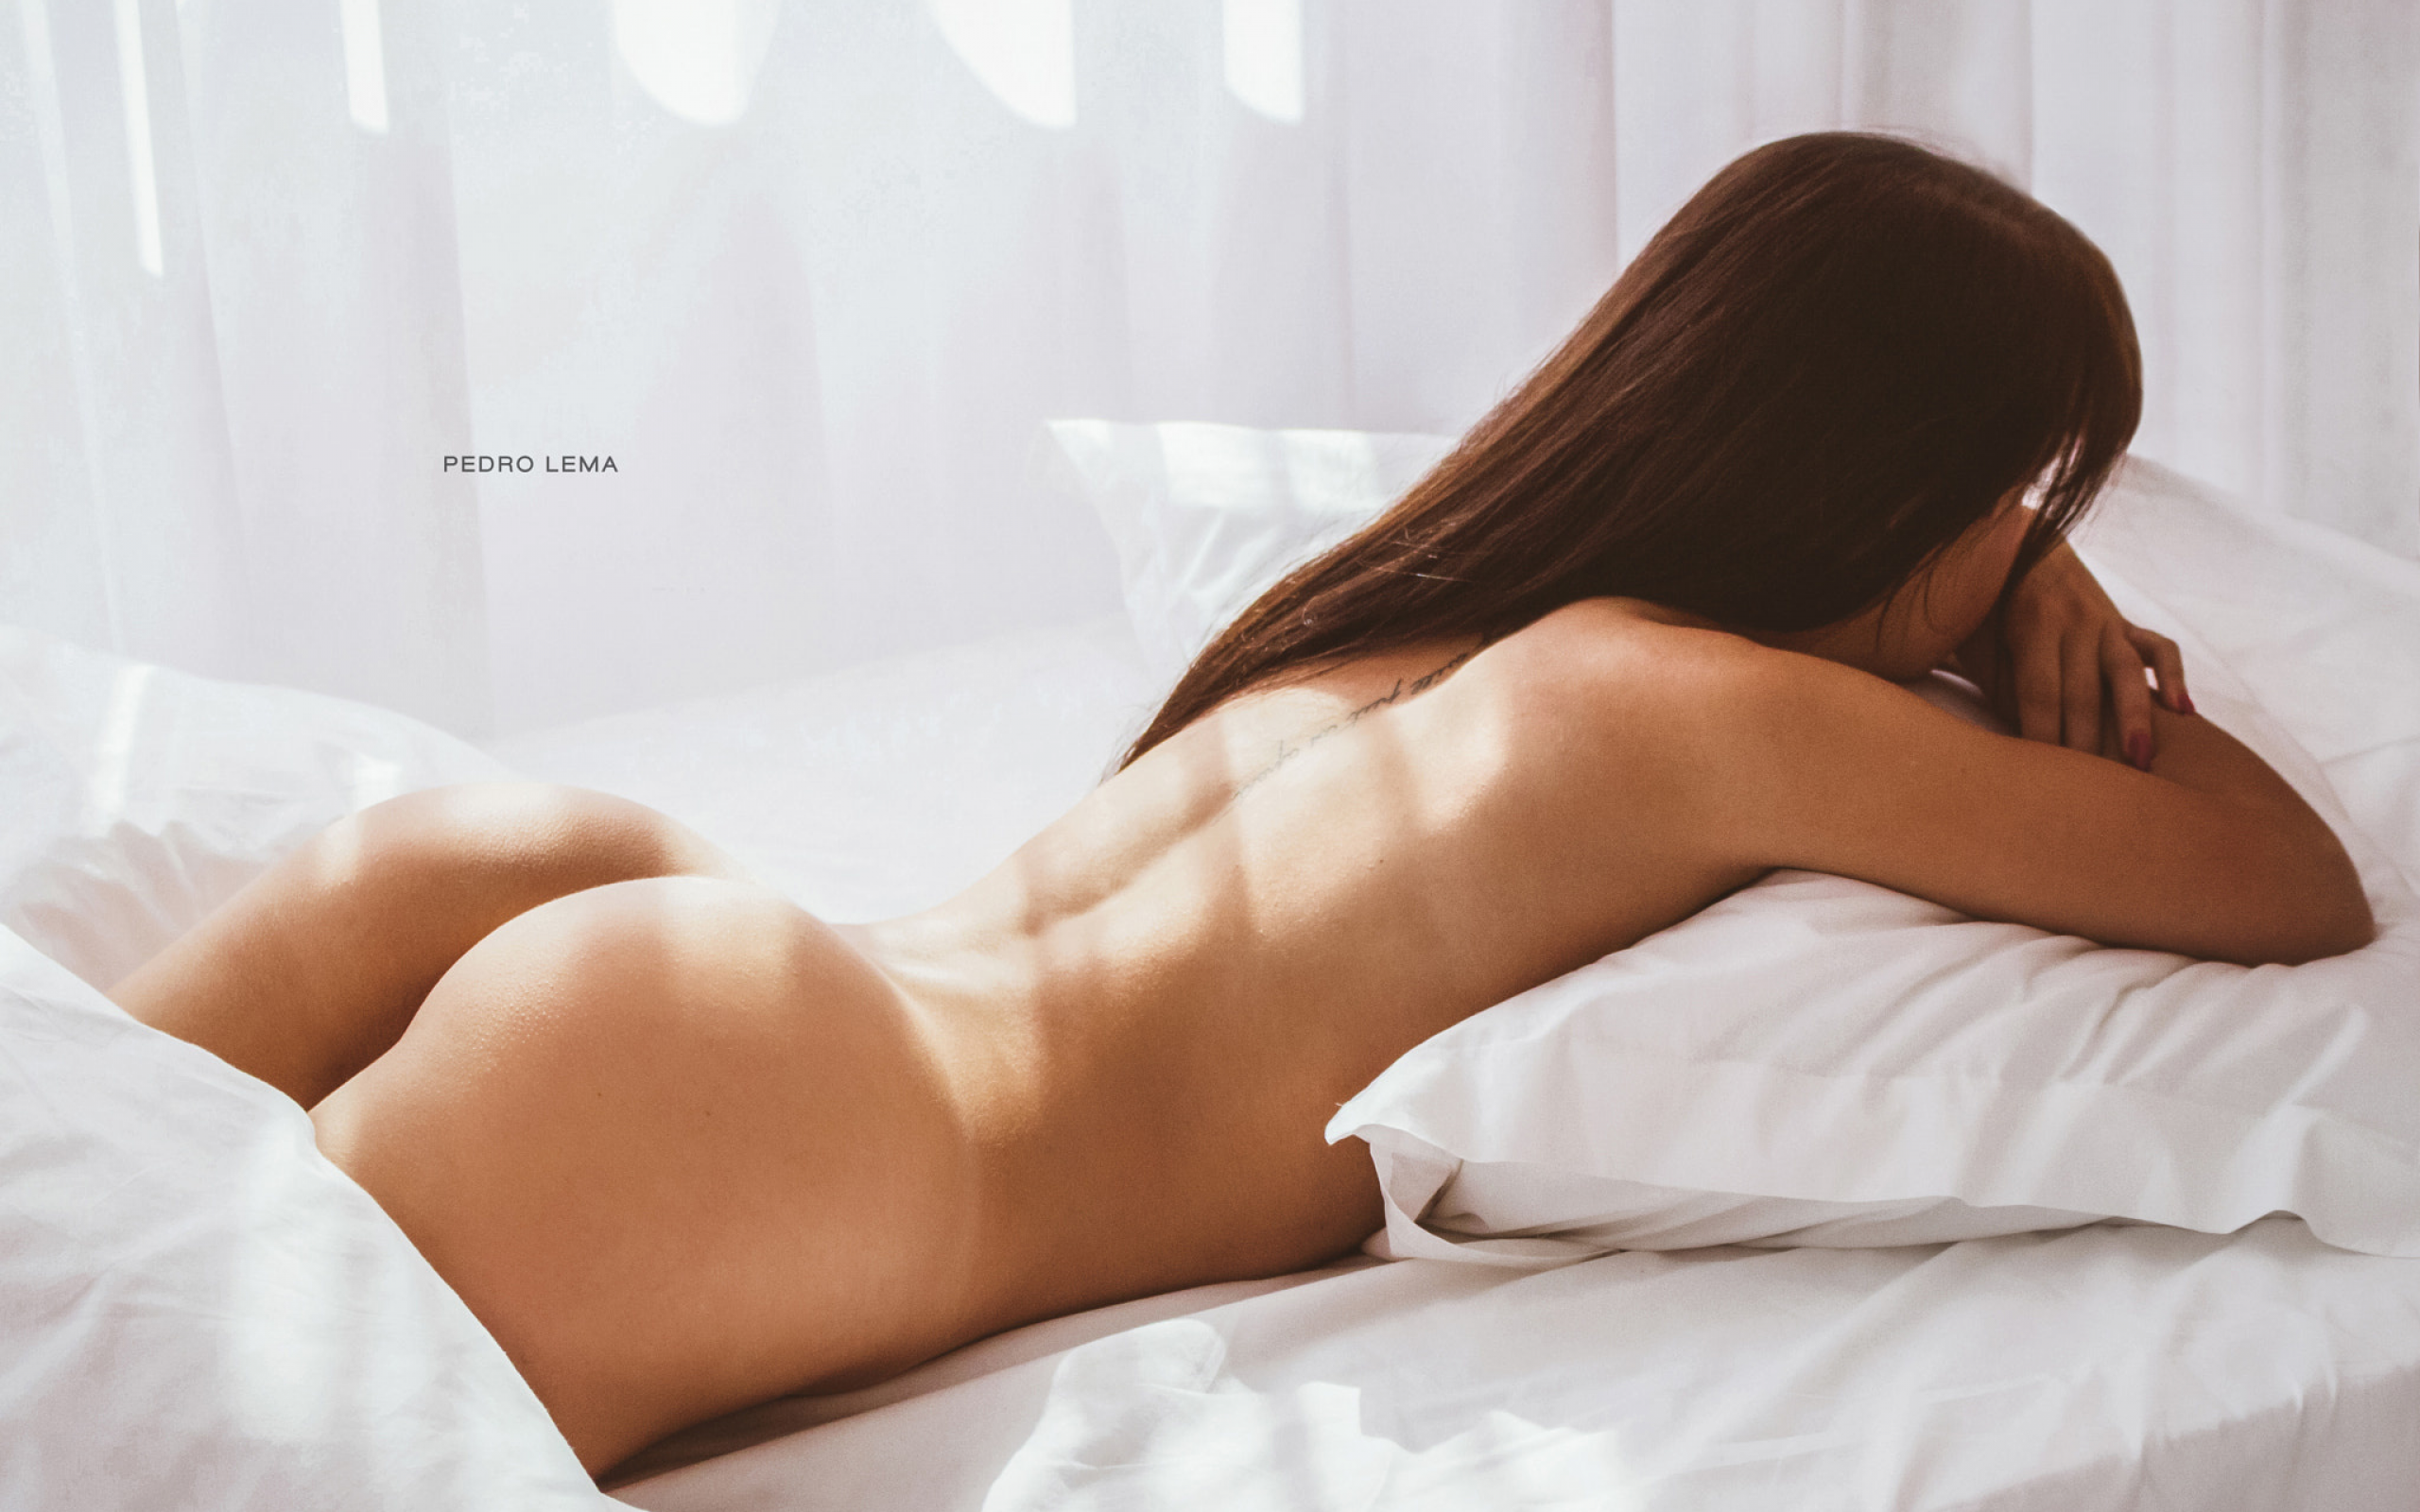 babes-naked-on-bed-ass-up-naturist